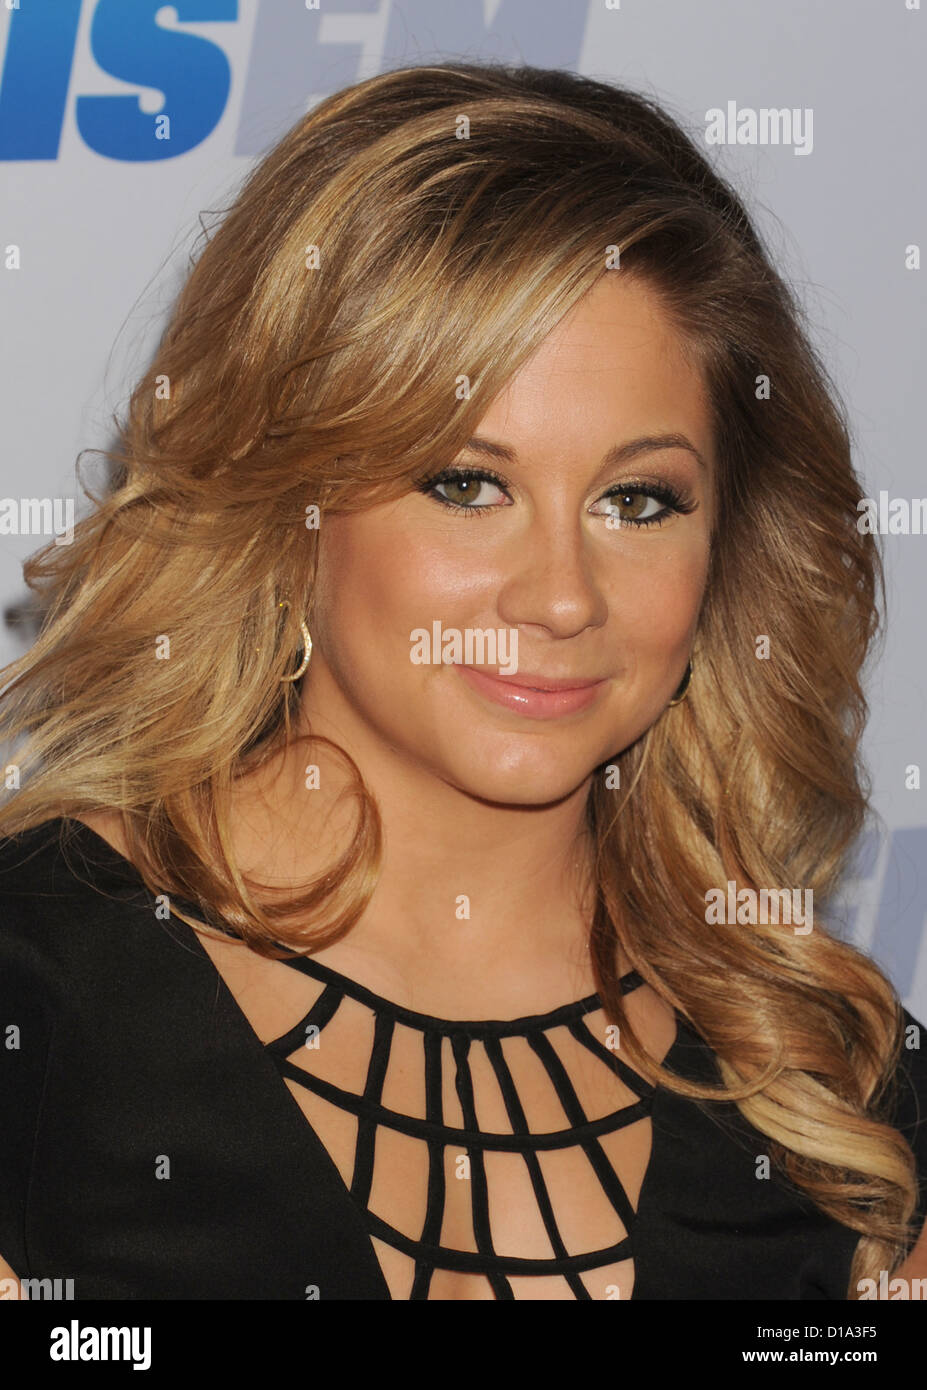 SHAWN JOHNSON US Olympic gold medal gymnast in December 2012. Photo Jeffrey Mayer - Stock Image